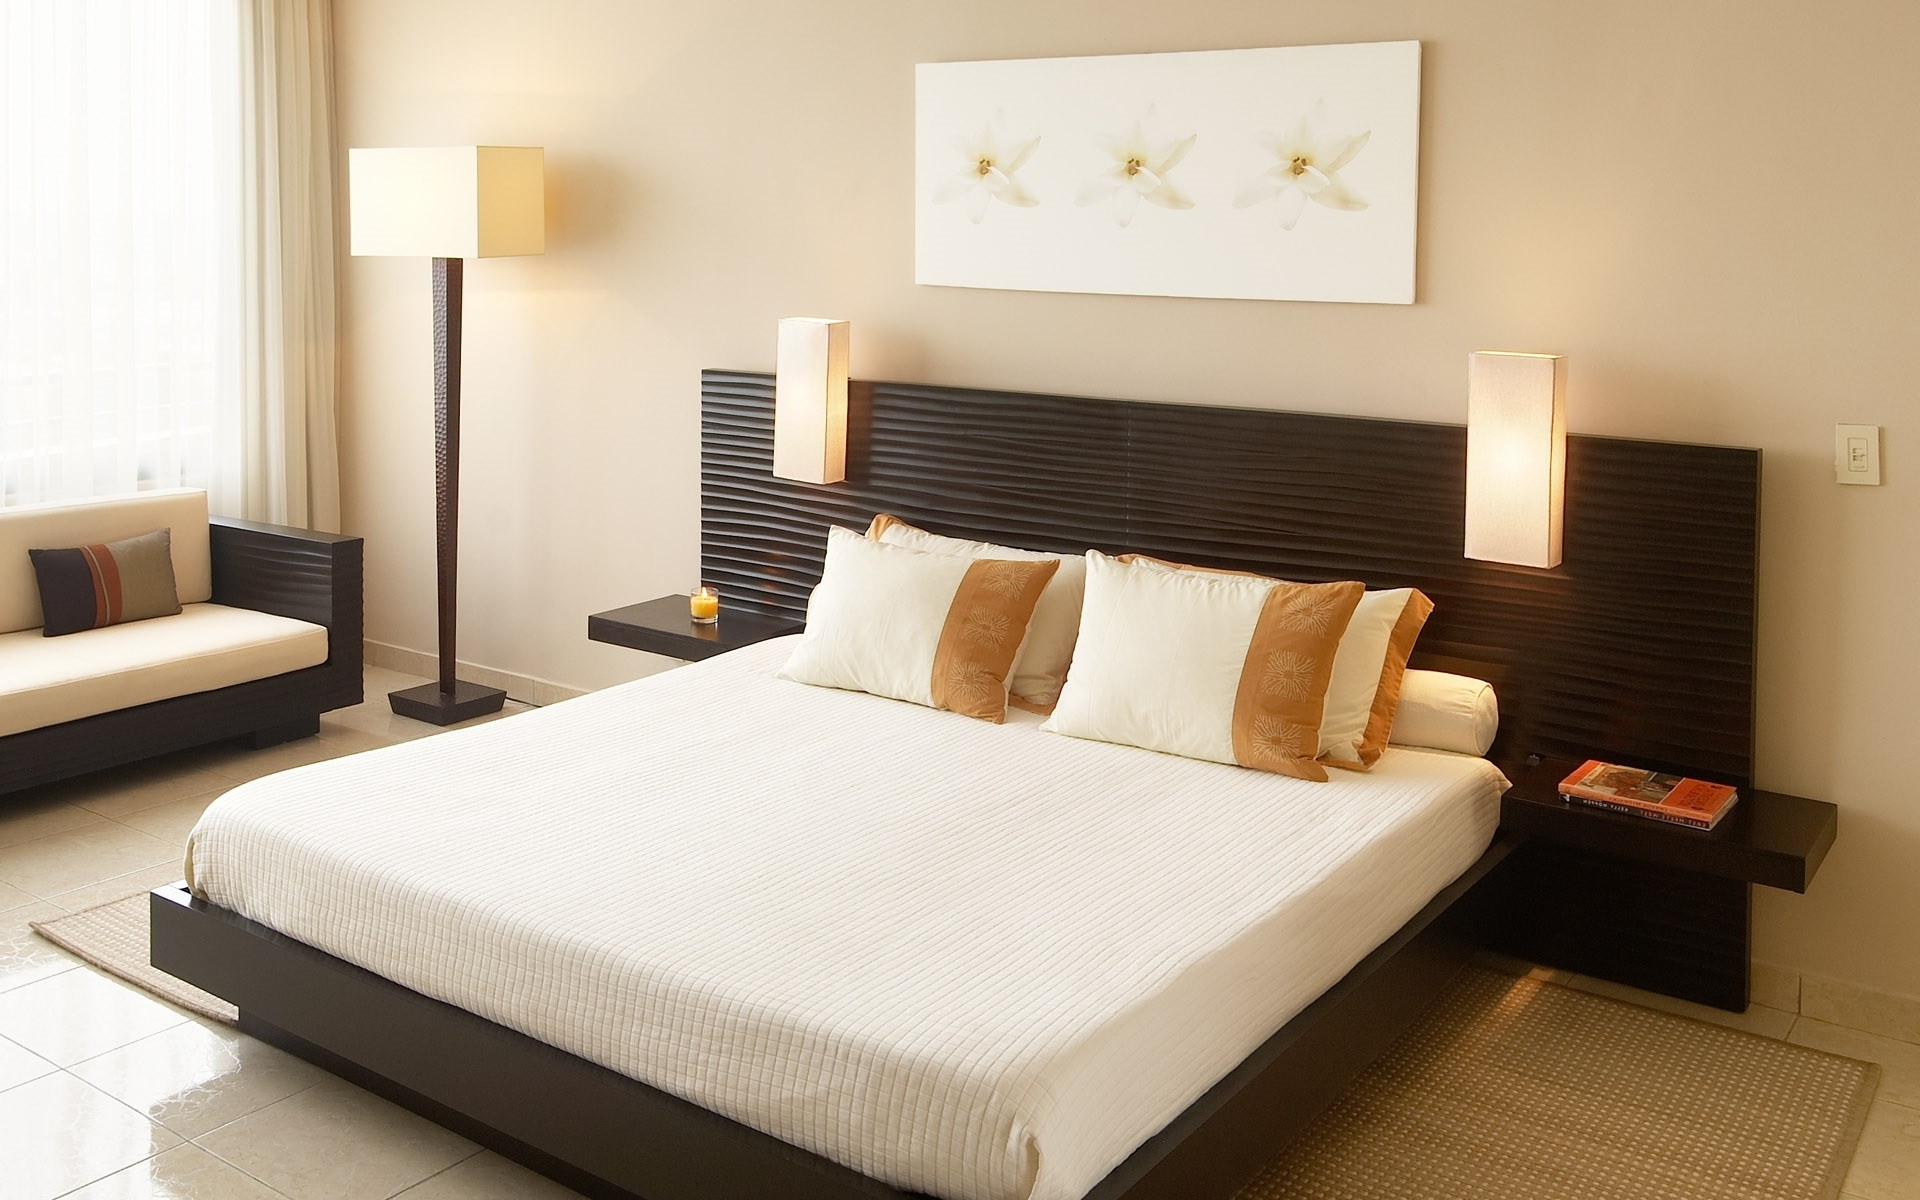 Famous Rectangular Mirror Above Bed Romantic Bedroom Decorations White Throughout Fabric Wall Art Above Bed (View 5 of 15)